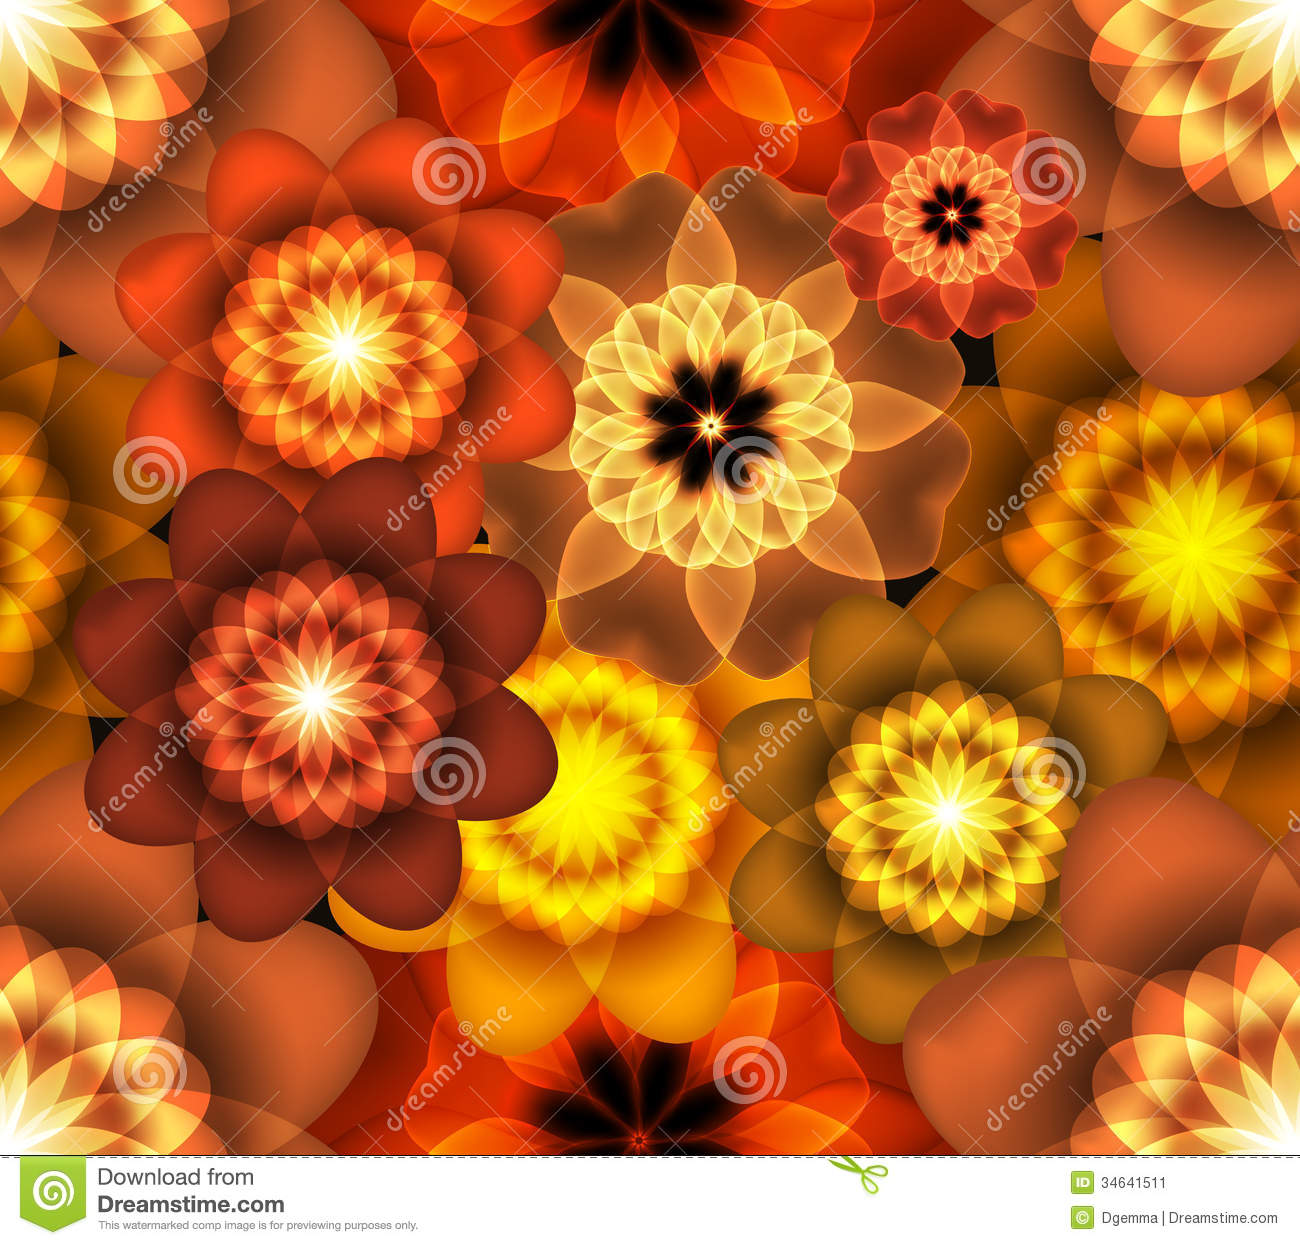 bright floral wallpaper stock image image 34641511